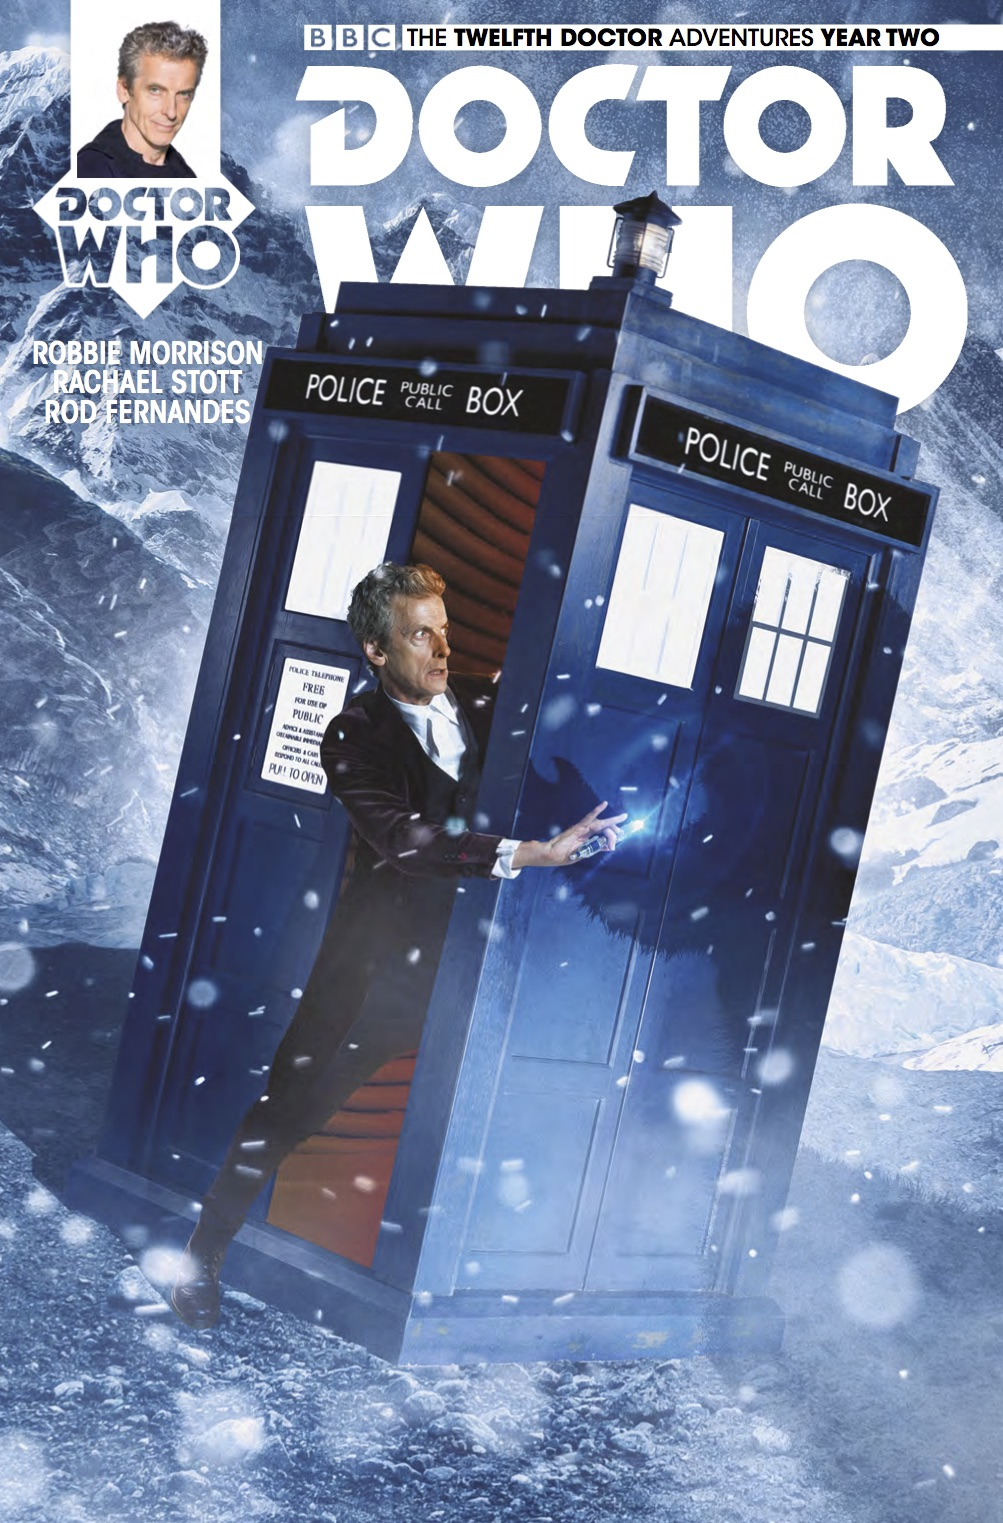 Doctor Who: The Twelfth Doctor Year Two #14 photo cover